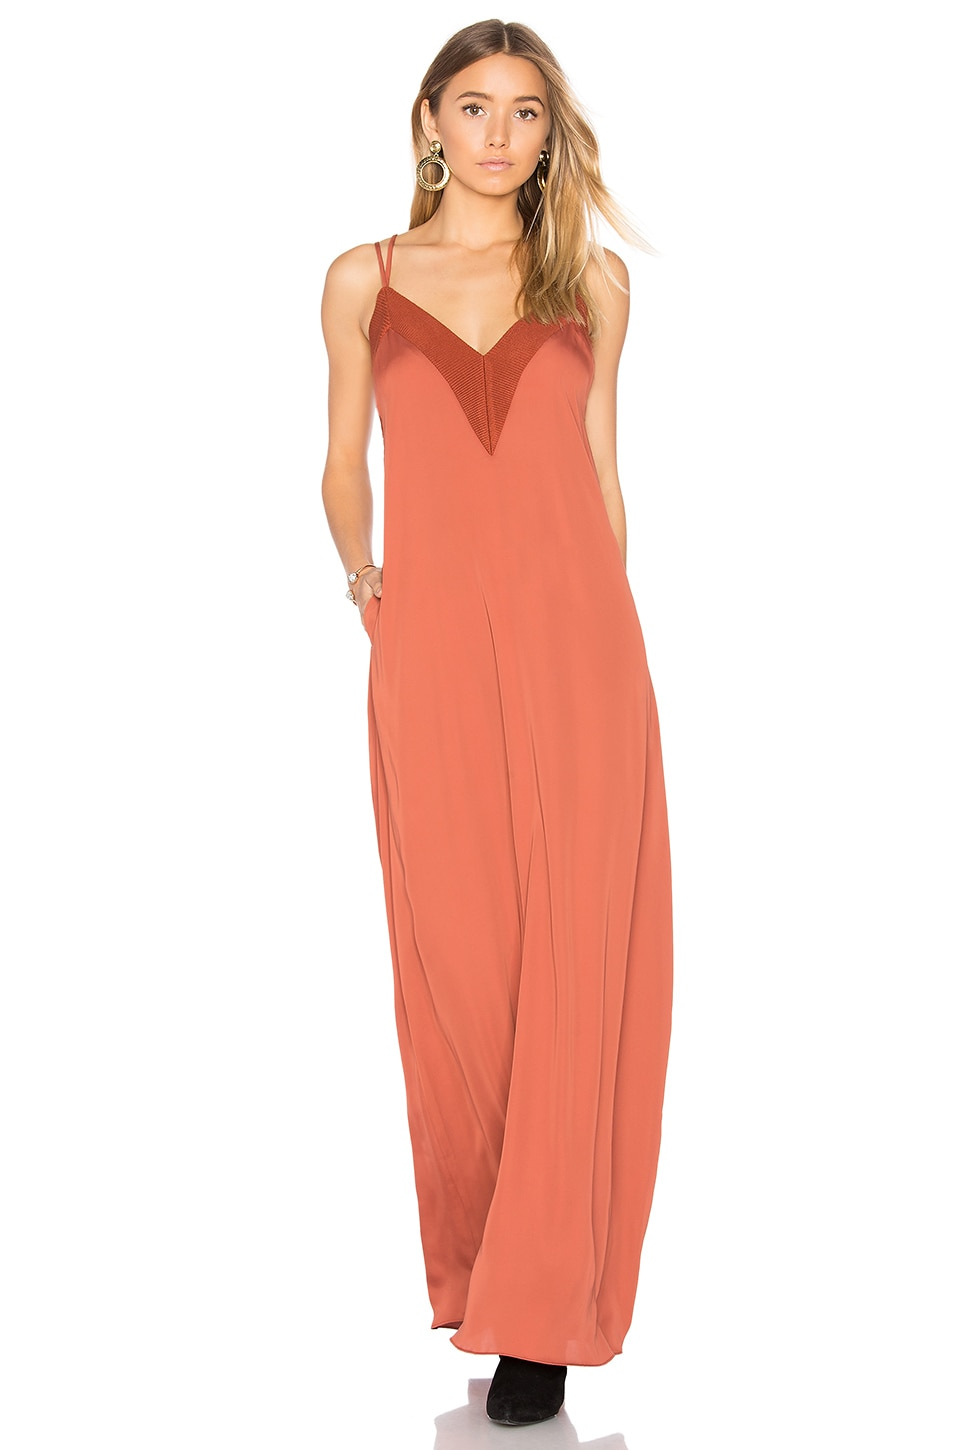 x REVOLVE Michelle Maxi by House of Harlow 1960